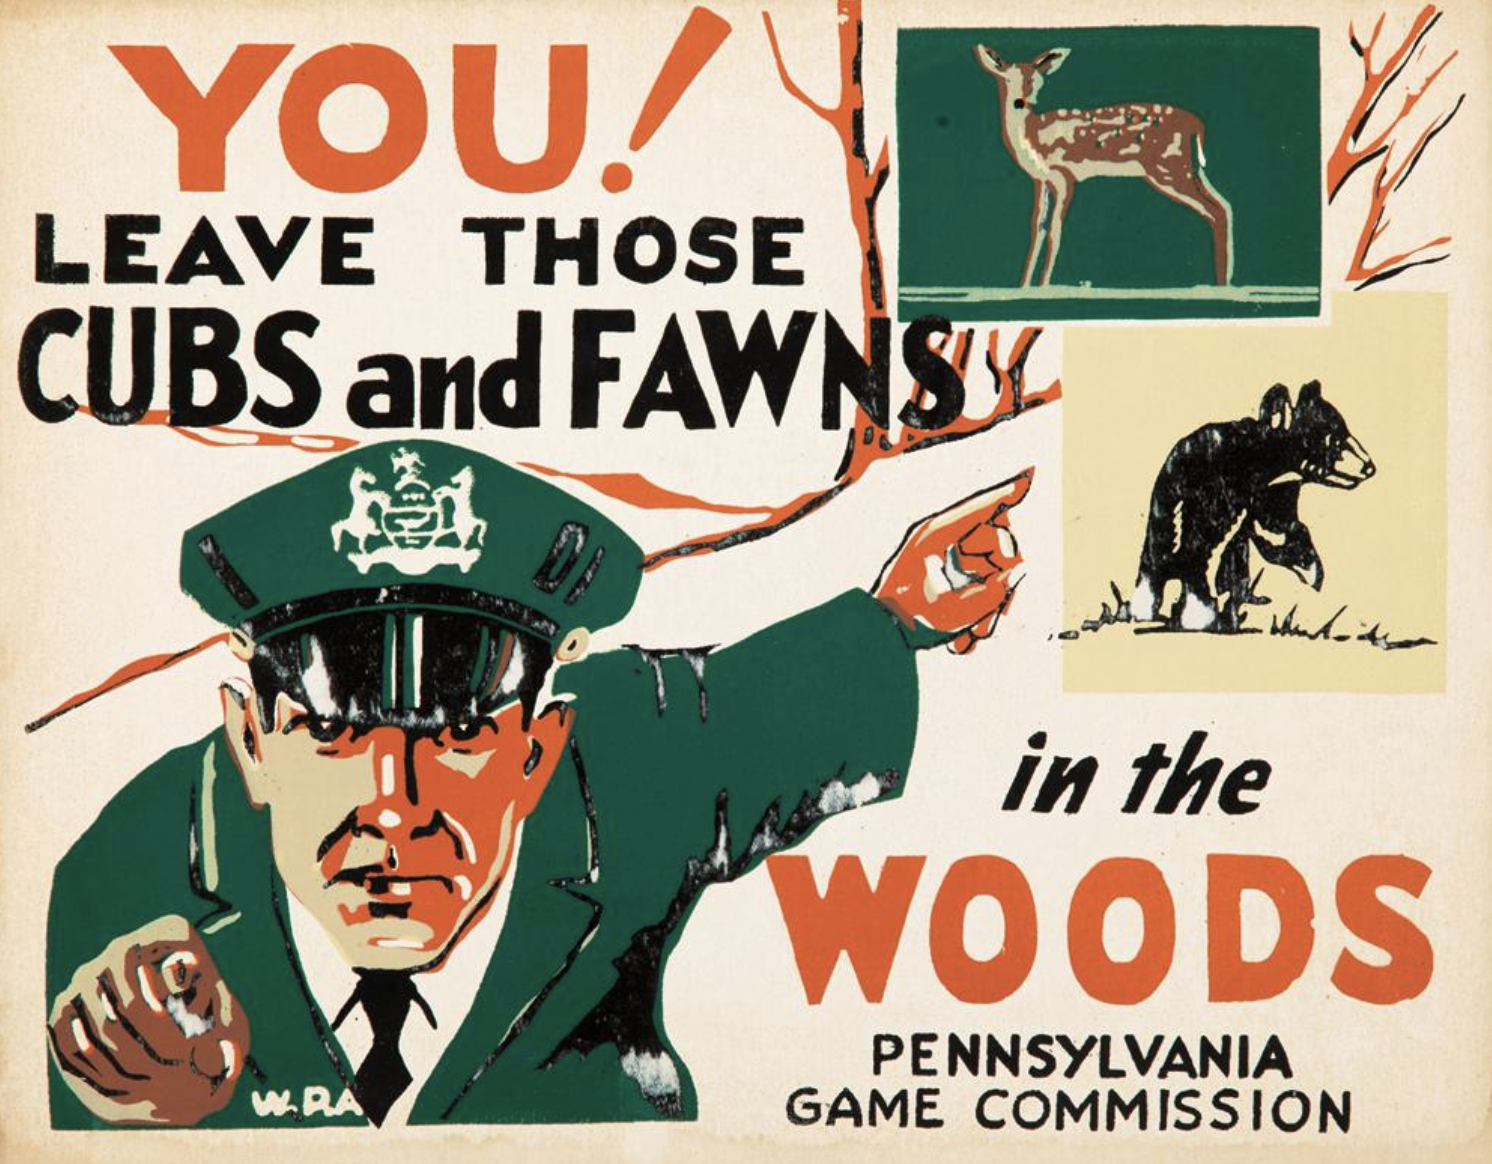 illustrational poster of an officer pointing at illustrations of cubs and fawns